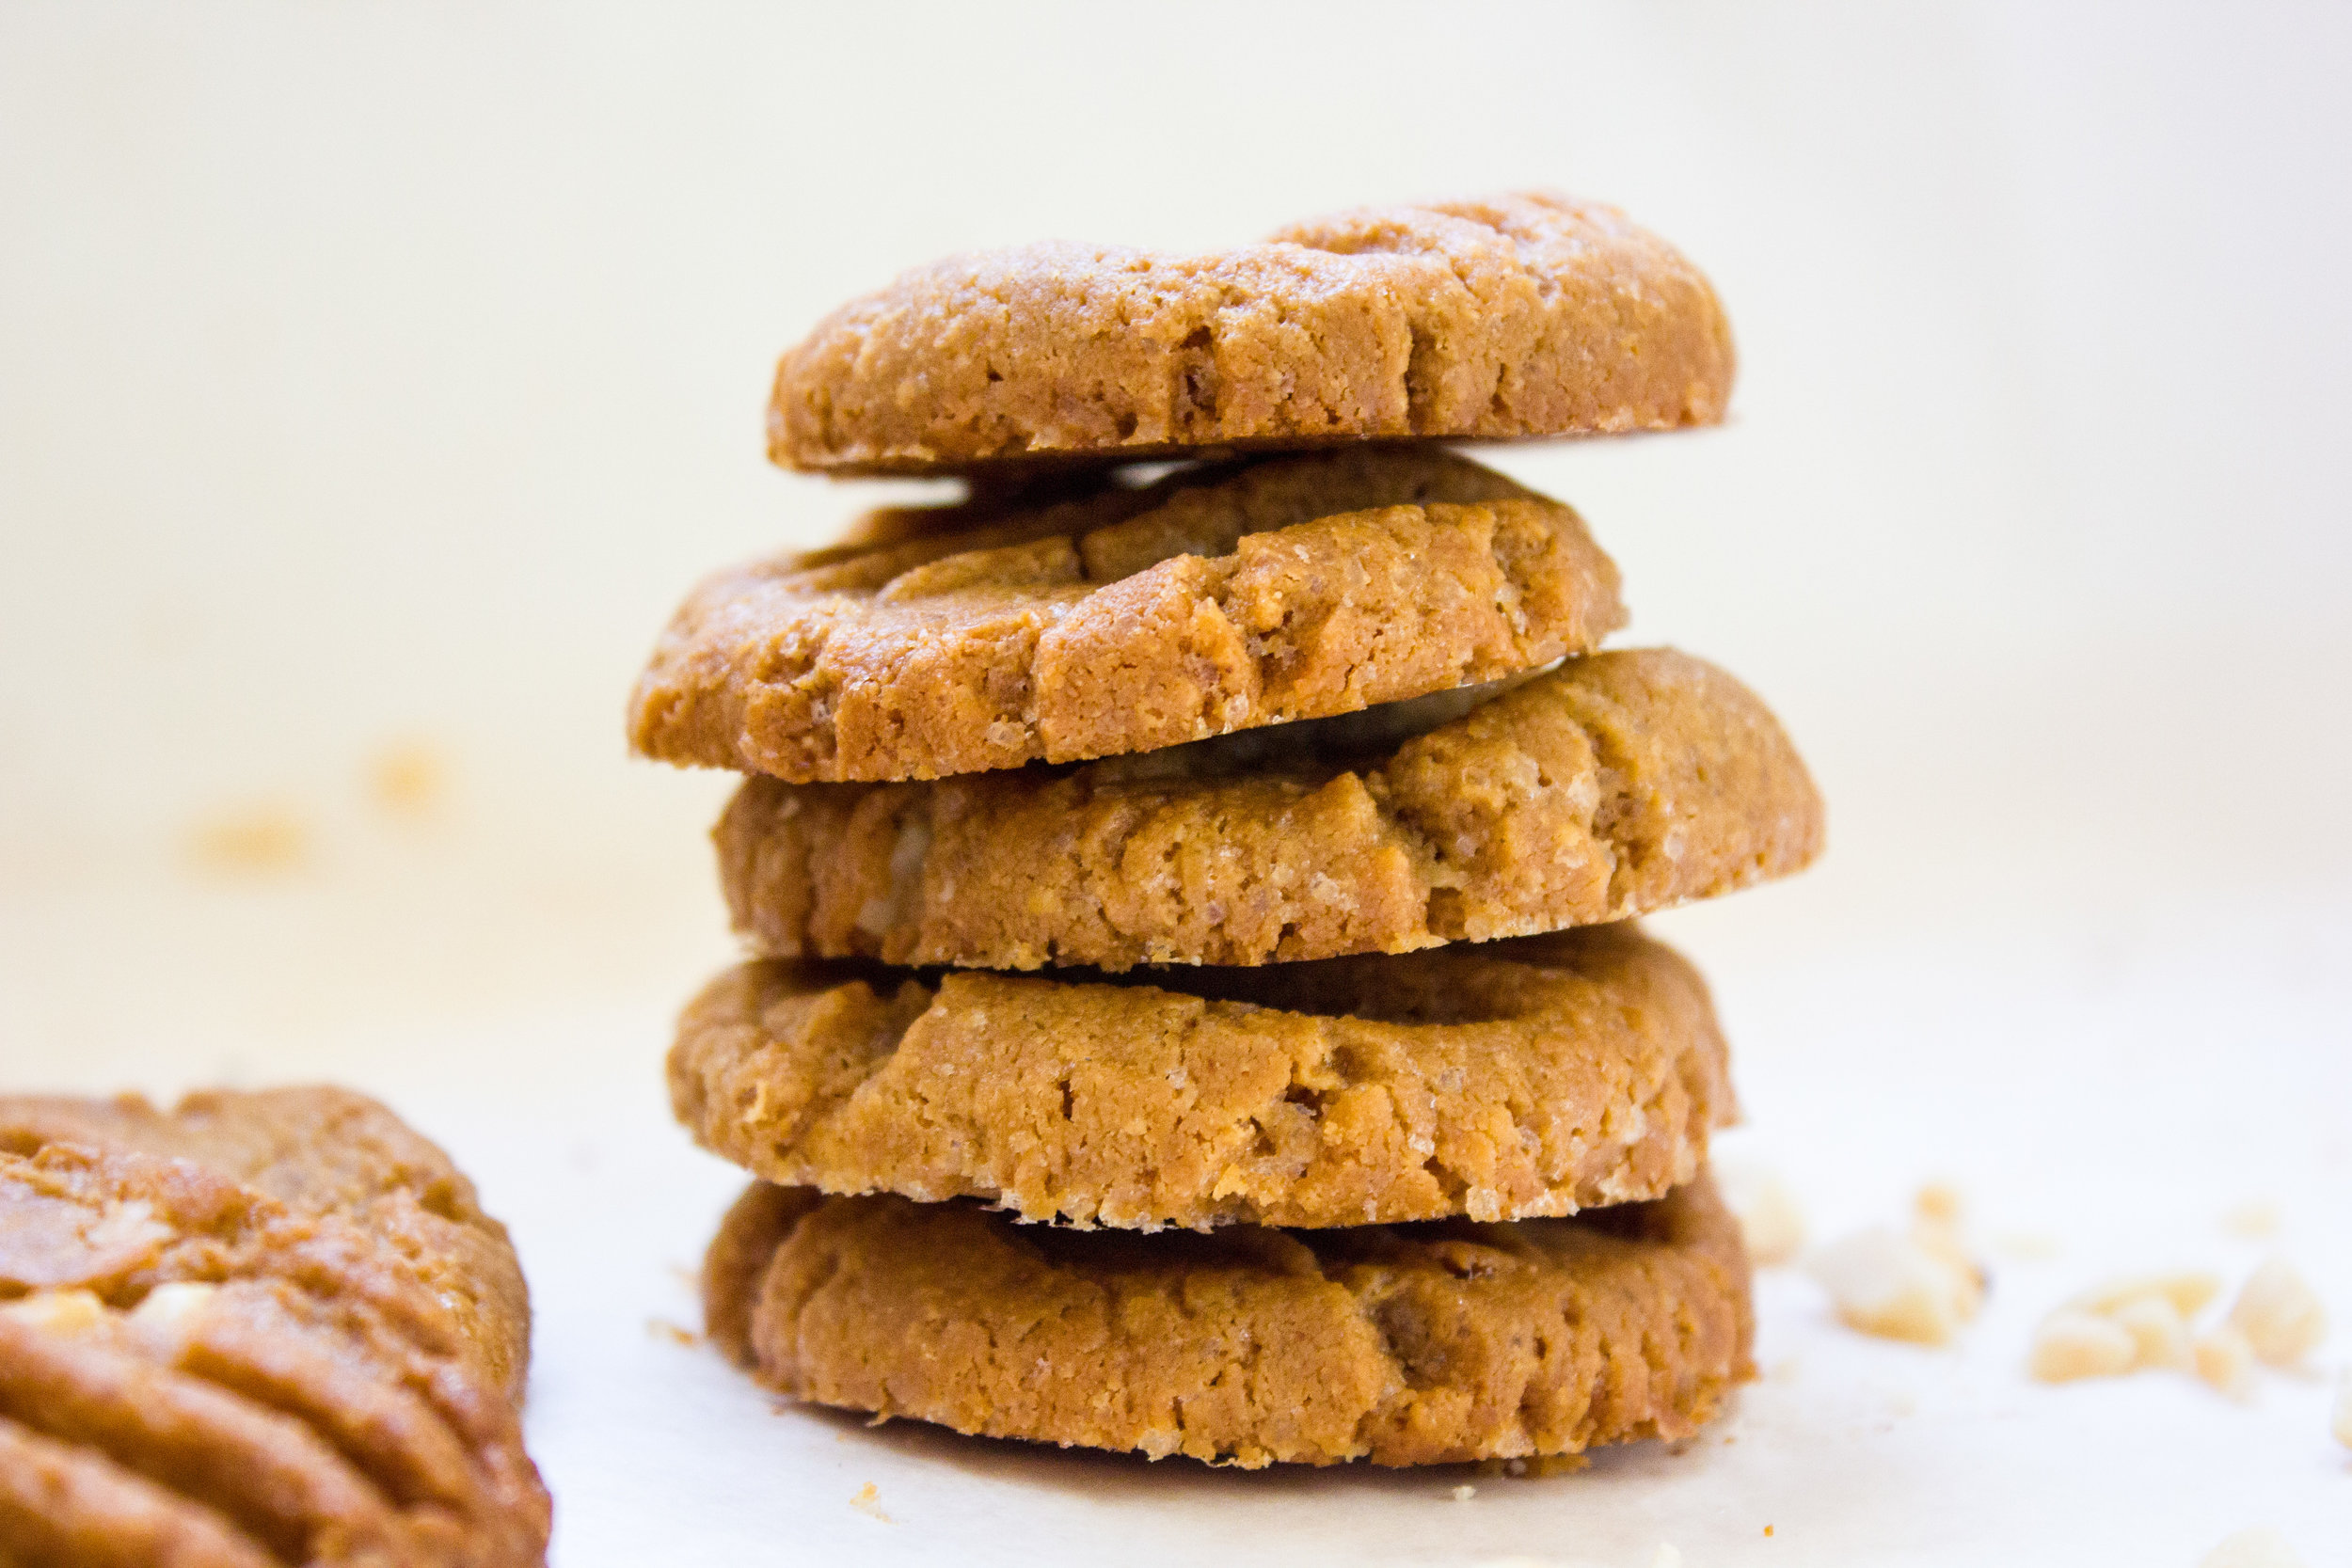 Peanutbutter cookies dipped in dark chocolate. #cookies #chocolate #peanutbutter